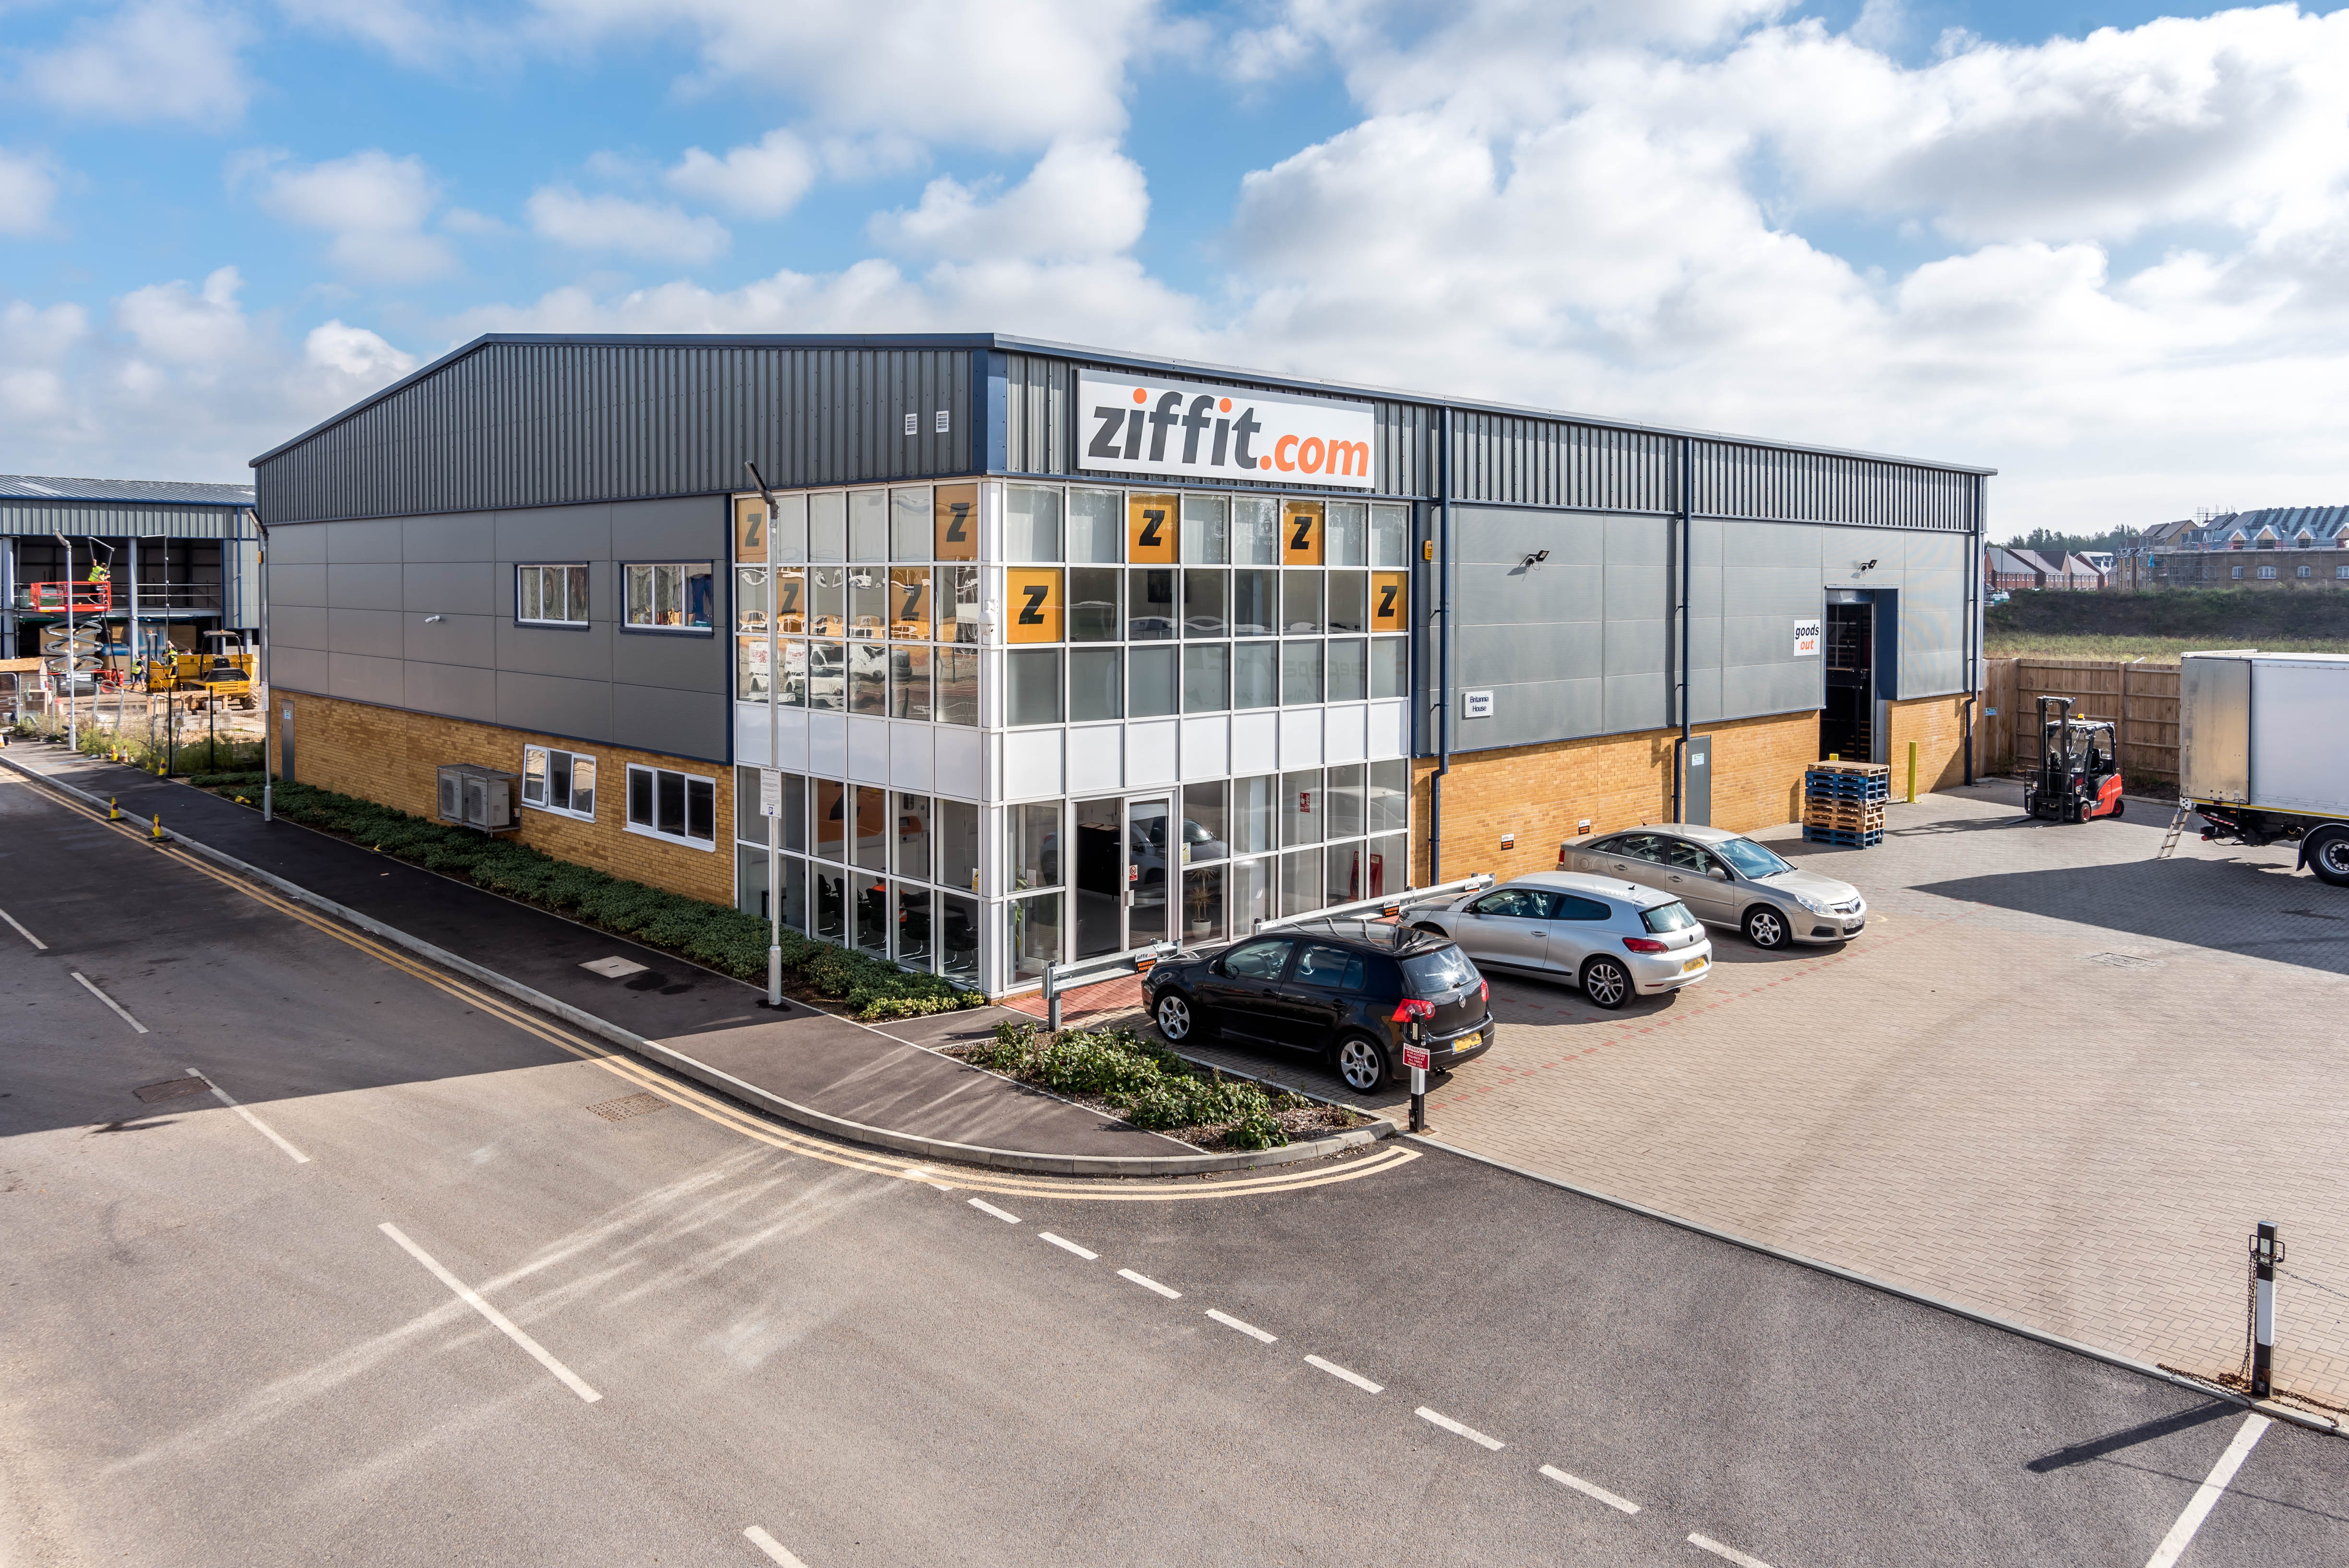 News Feature in the Observer 'Chichester Sees Unprecedented Industrial and Warehouse Development'